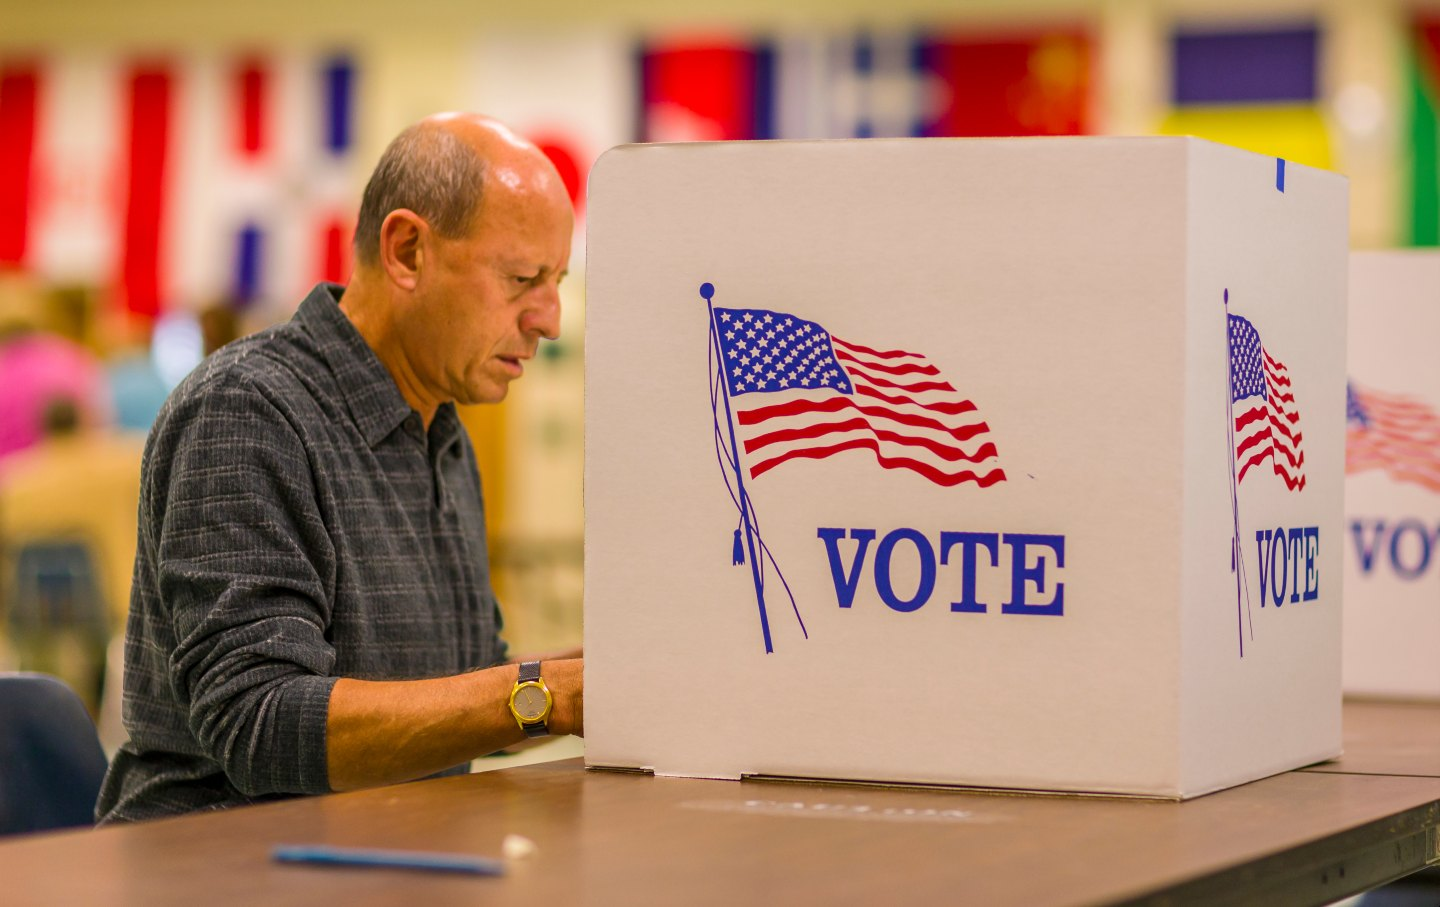 Man Voting in a Booth